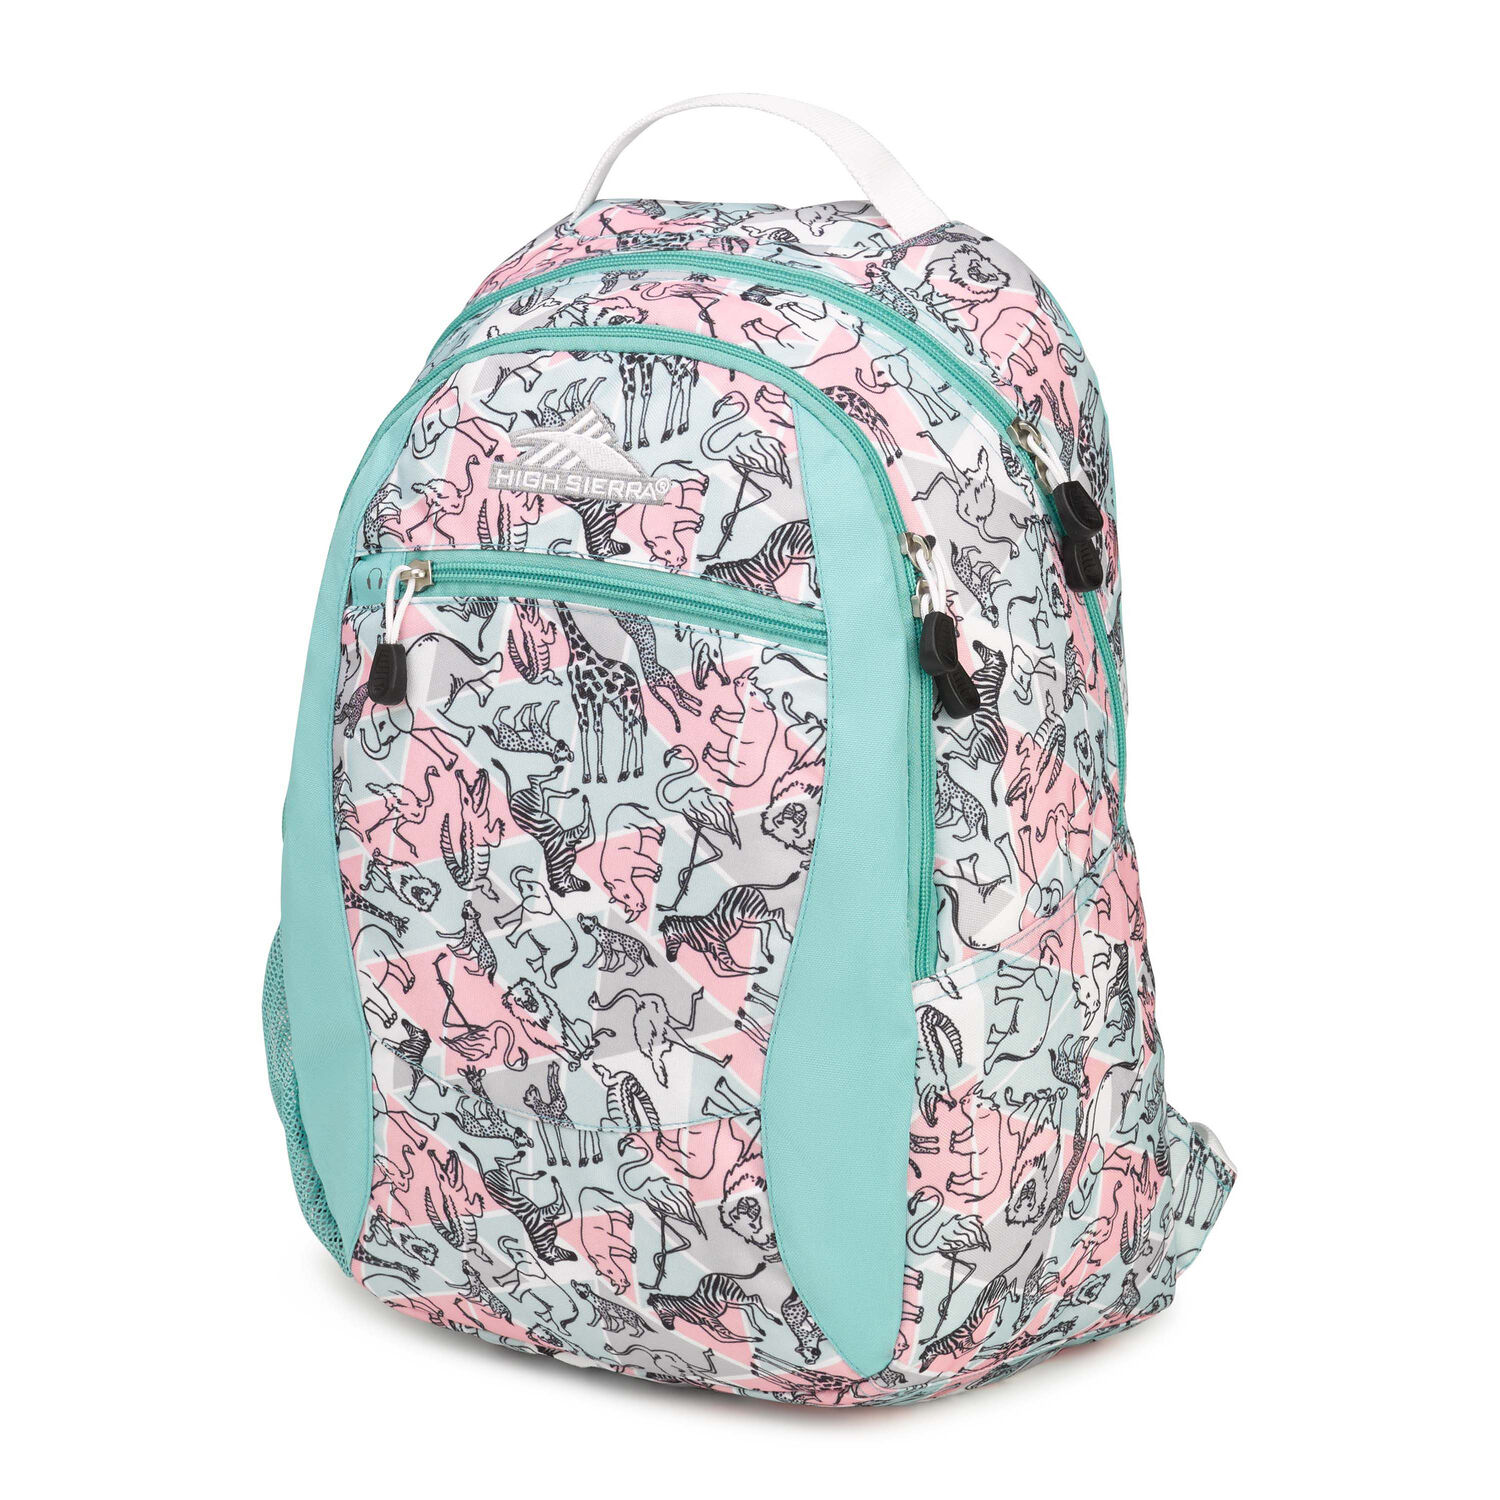 Up to 70% off on High Sierra Backpacks